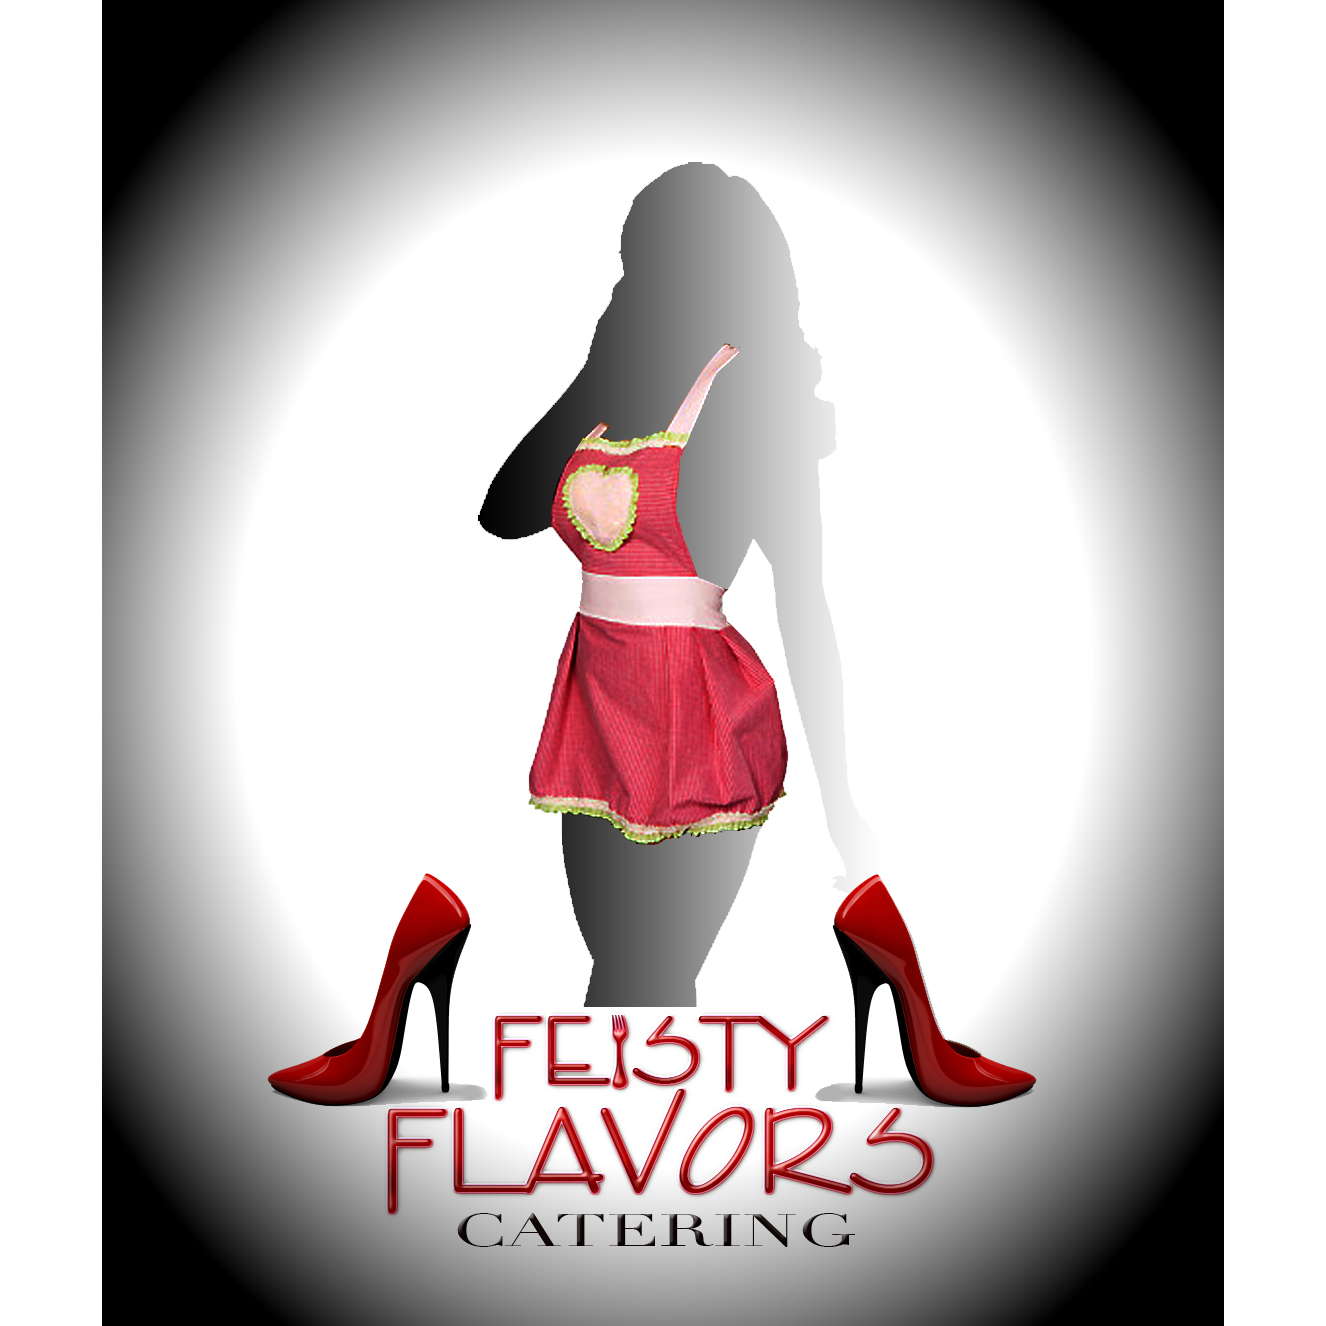 Feisty Flavors Catering